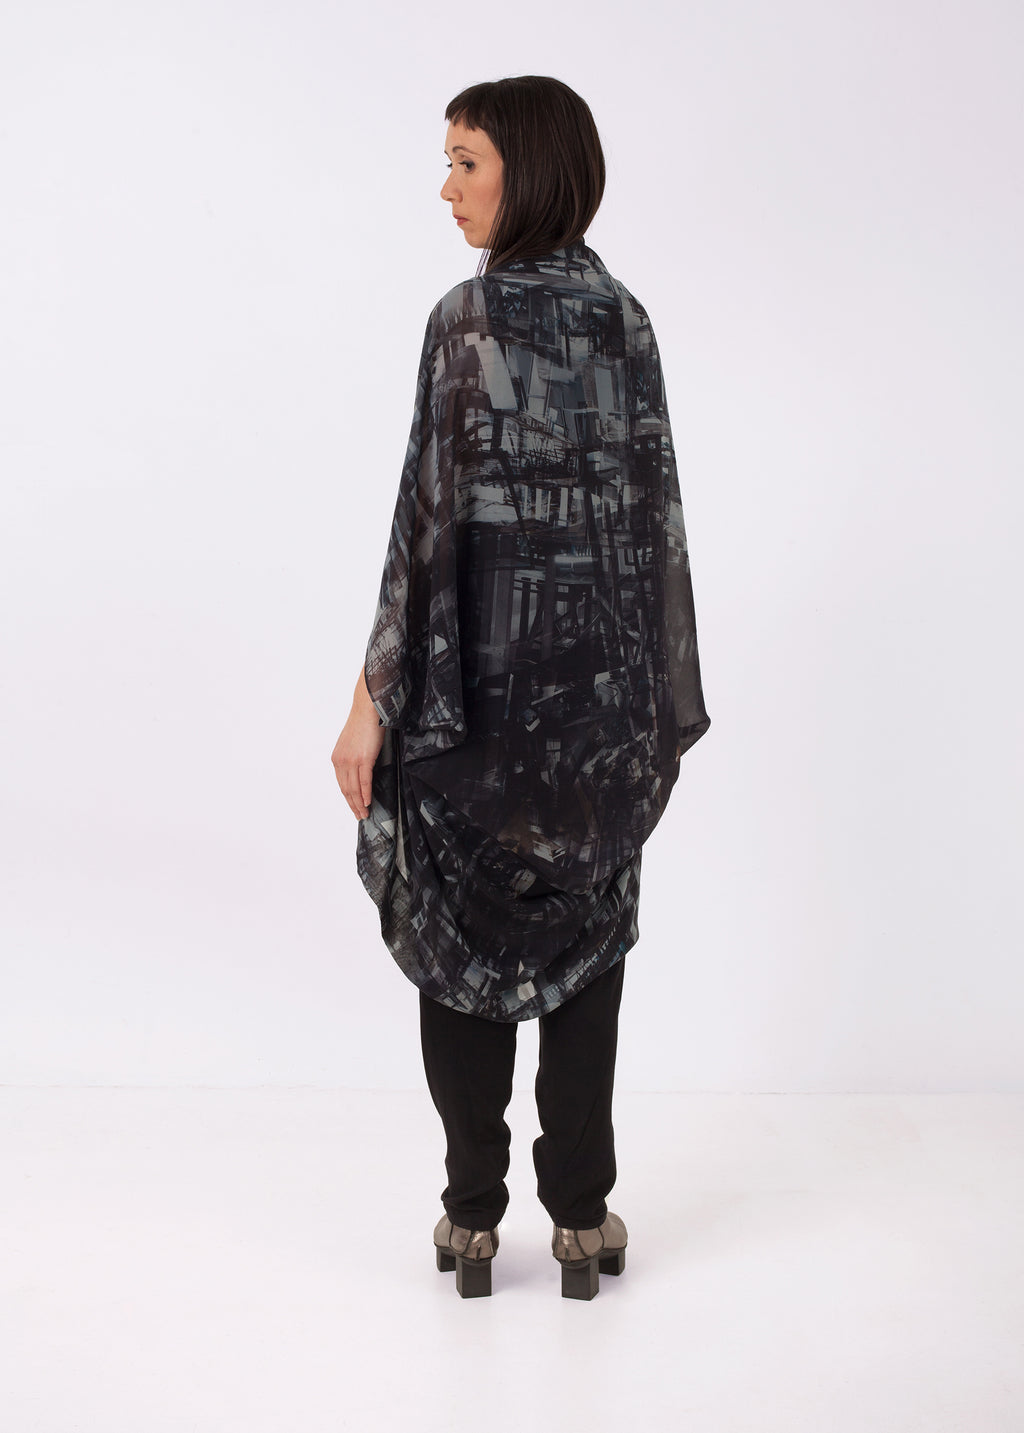 Featherweight Kimono Constructing Chaos Navy, ethical fashion, sustainable fashion, designer clothes, plus size clothing, textile print clothing, luxury online fashion, slow fashion